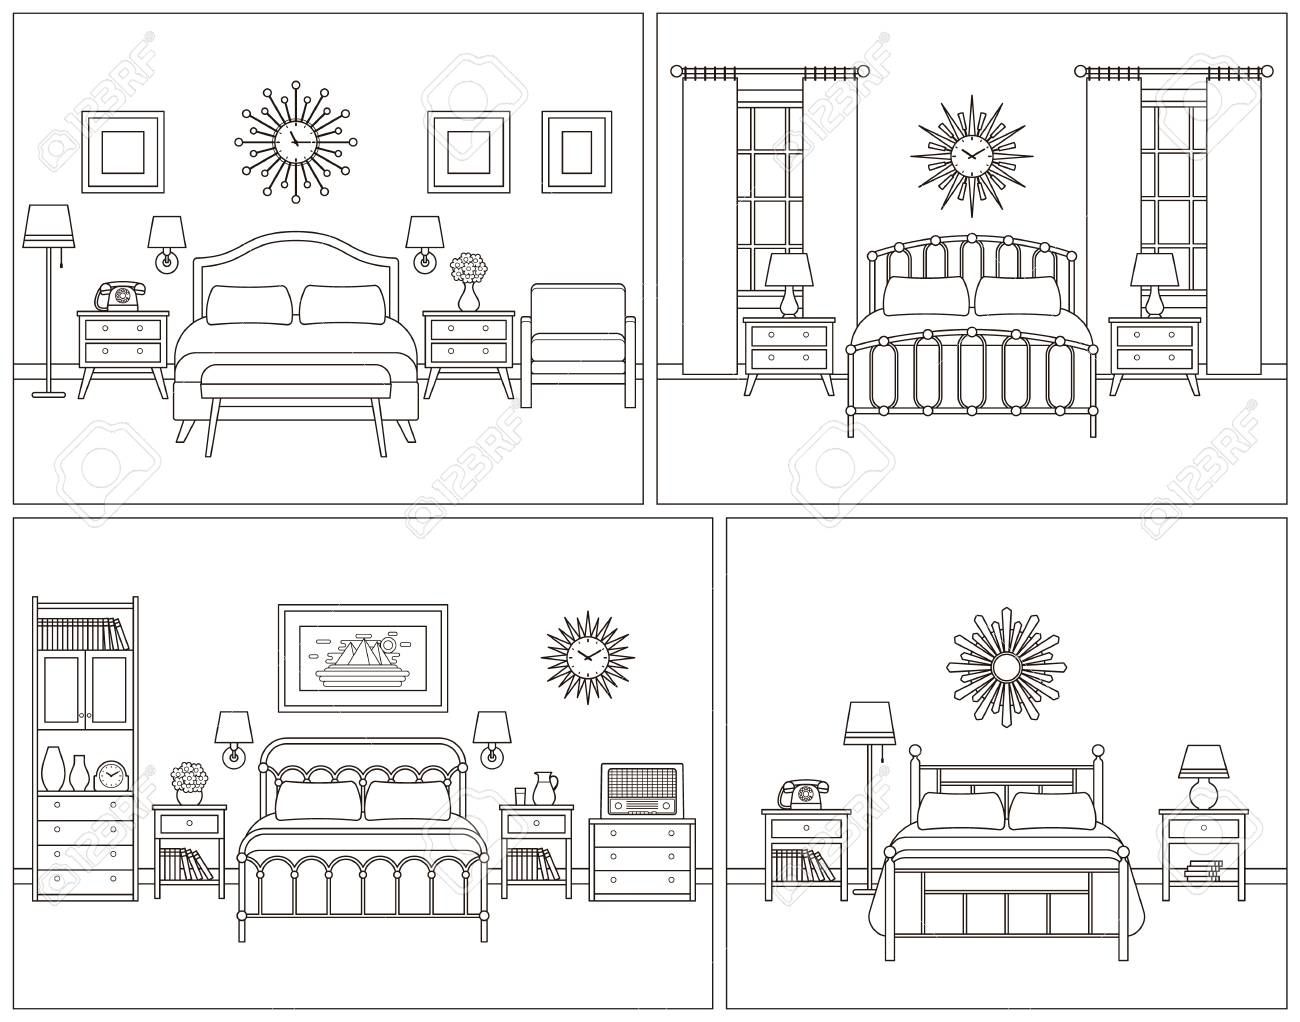 Room Interior Hotel Bedroom With Bed Vector Linear Illustration Royalty Free Cliparts Vectors And Stock Illustration Image 97449079